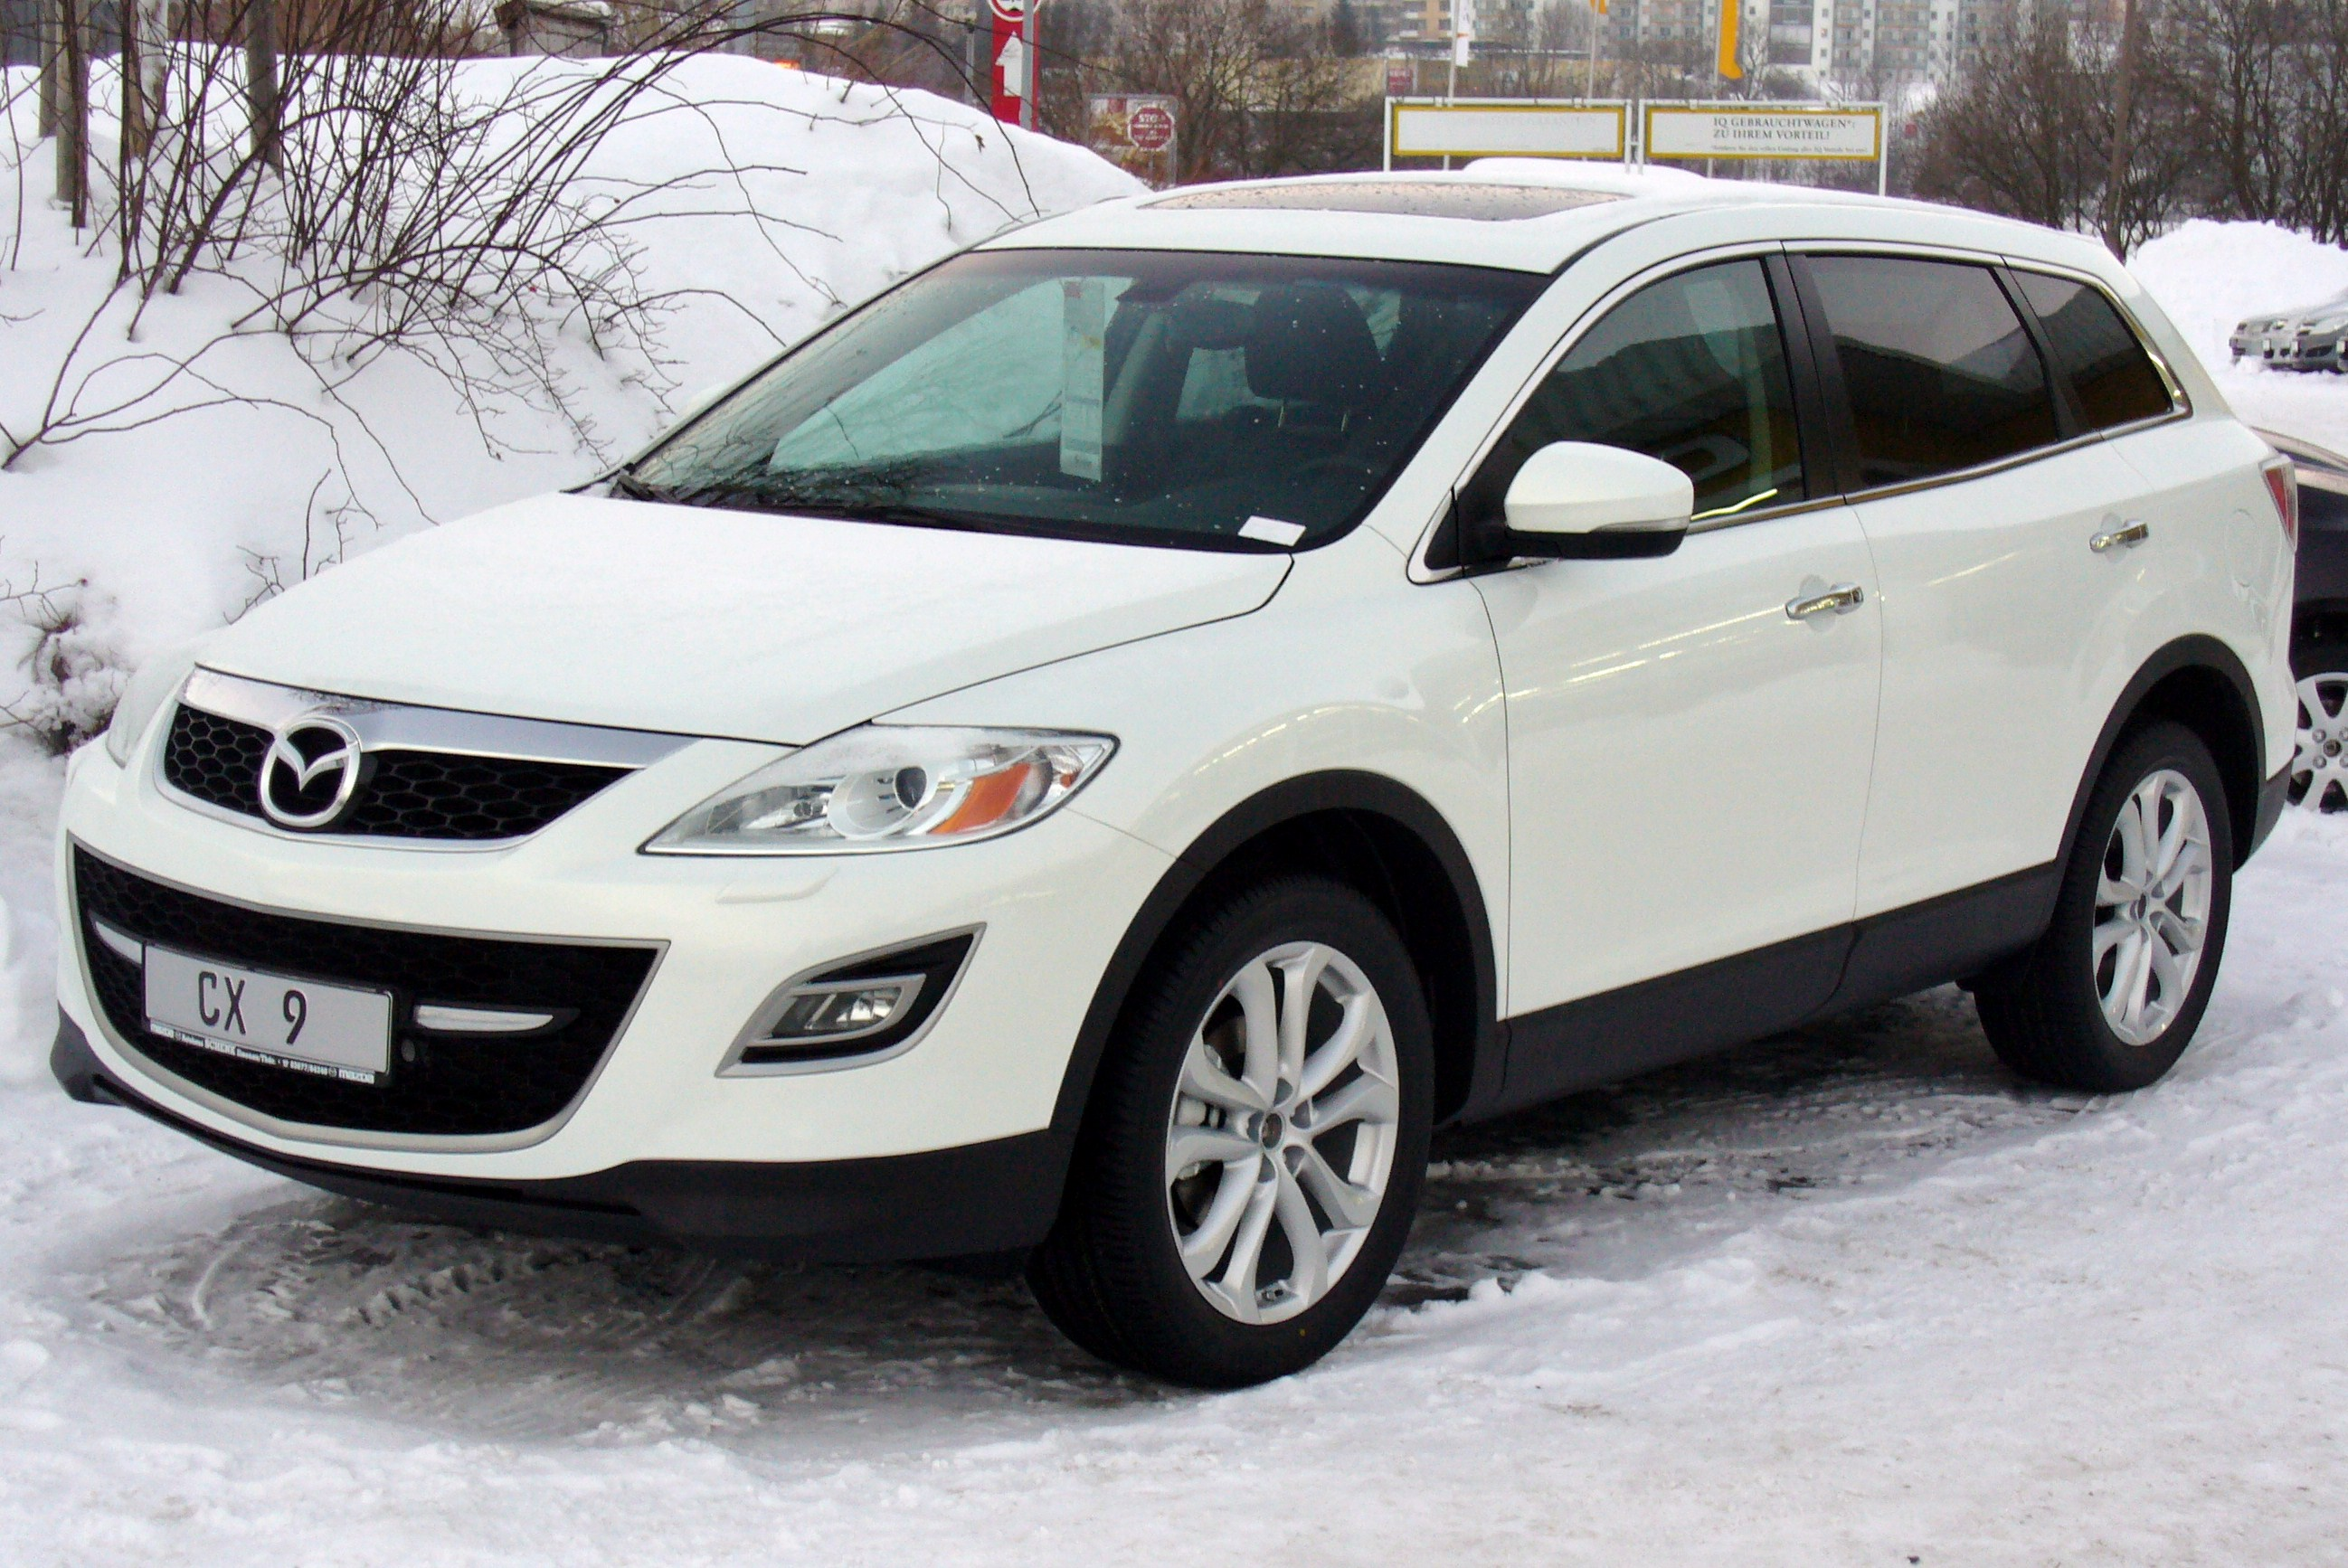 2011 mazda cx 9 information and photos momentcar. Black Bedroom Furniture Sets. Home Design Ideas